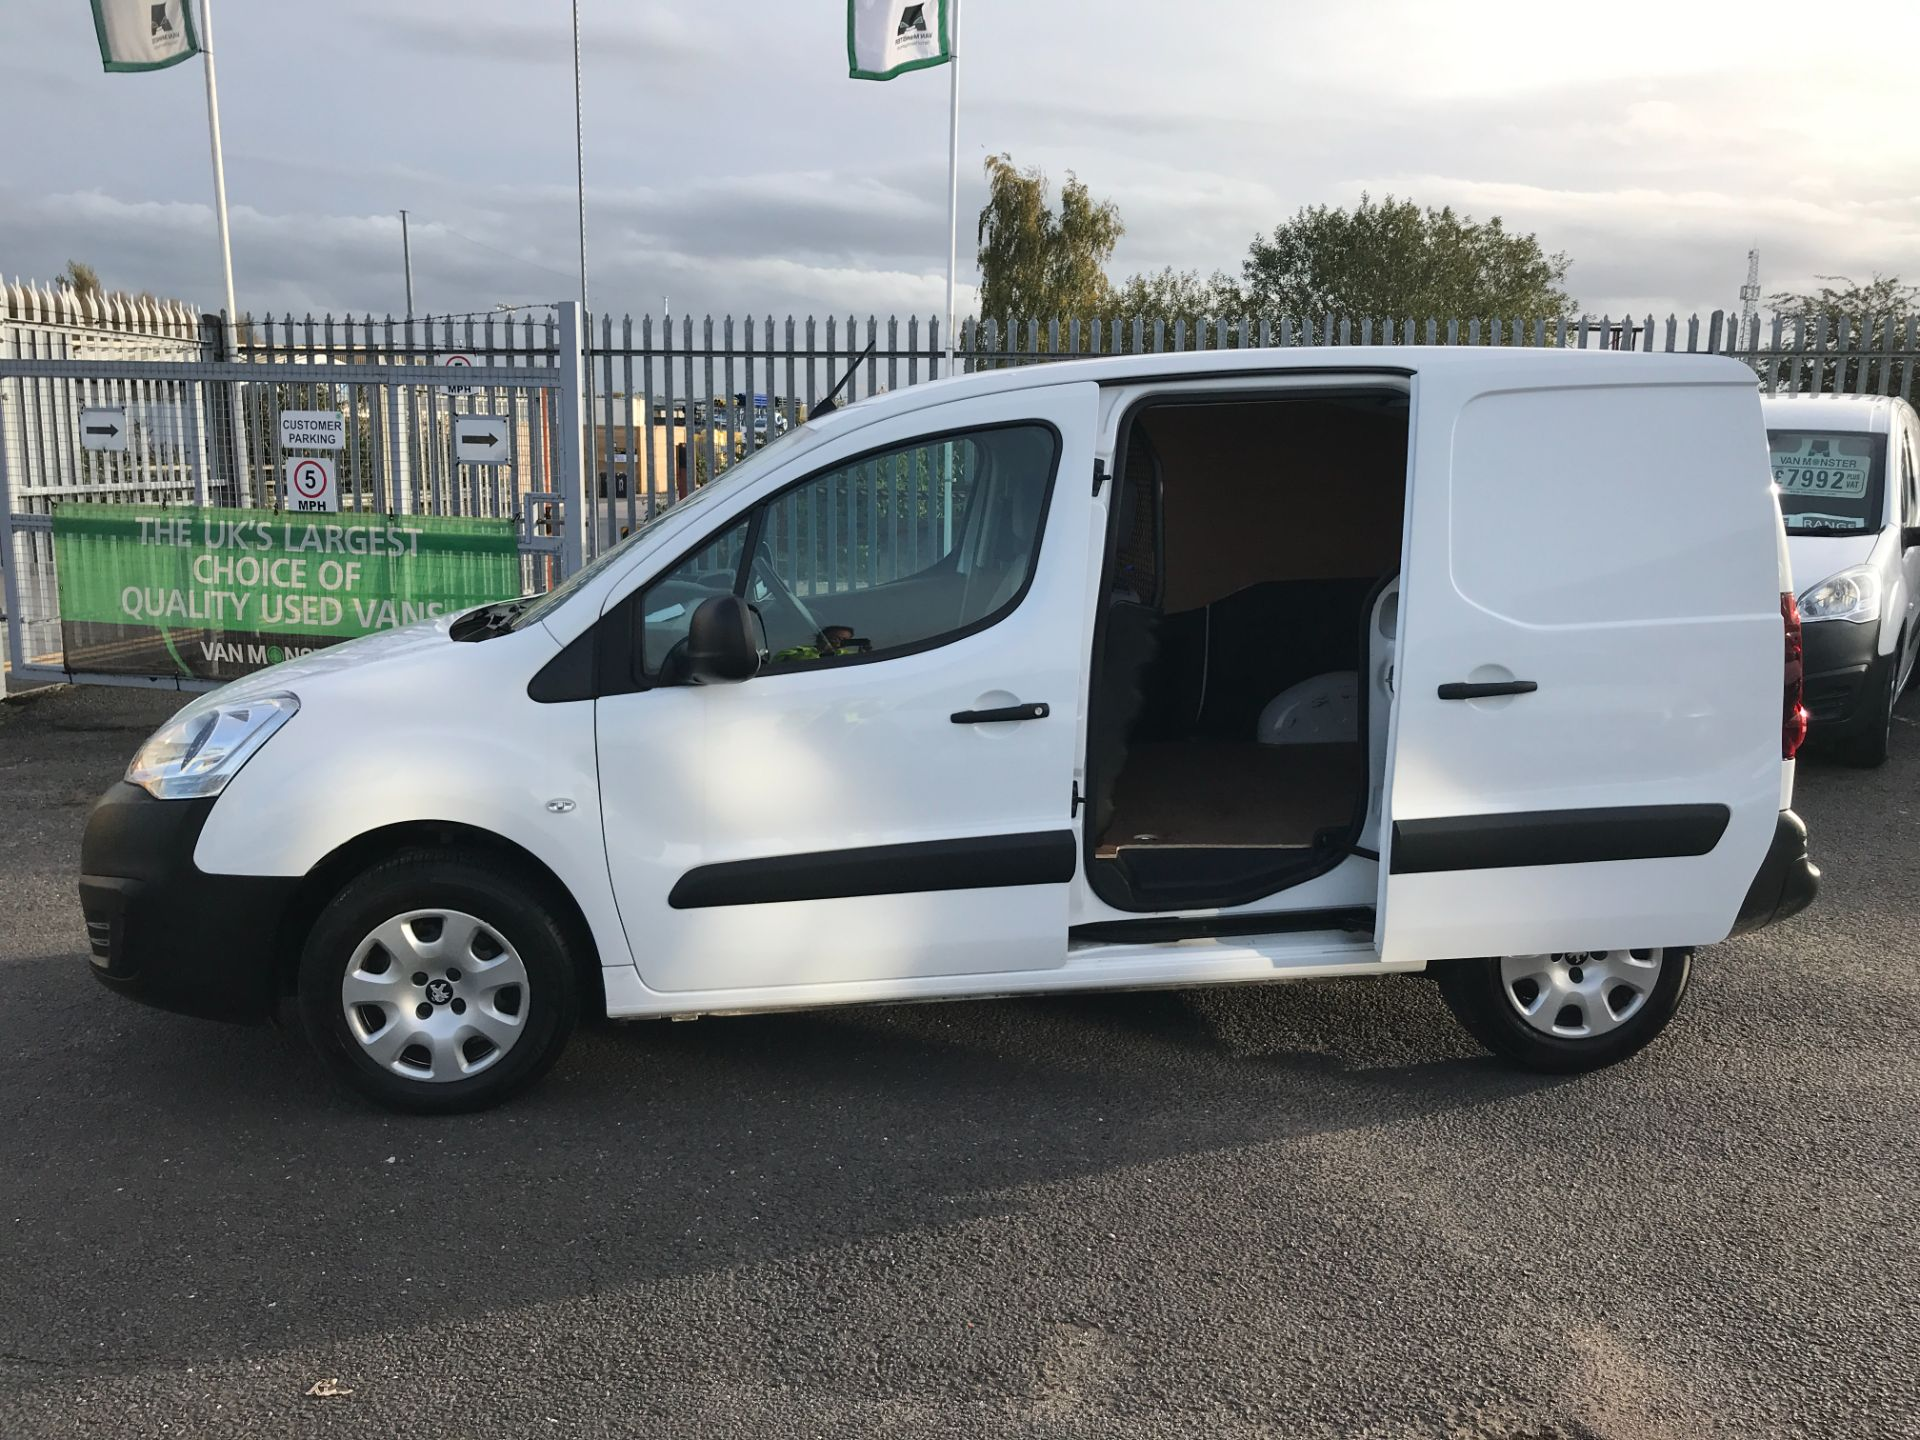 2016 Peugeot Partner L1 850 1.6BLUEHDI 100PS PROFESSIONAL EURO 6 (NU66YAY) Image 24